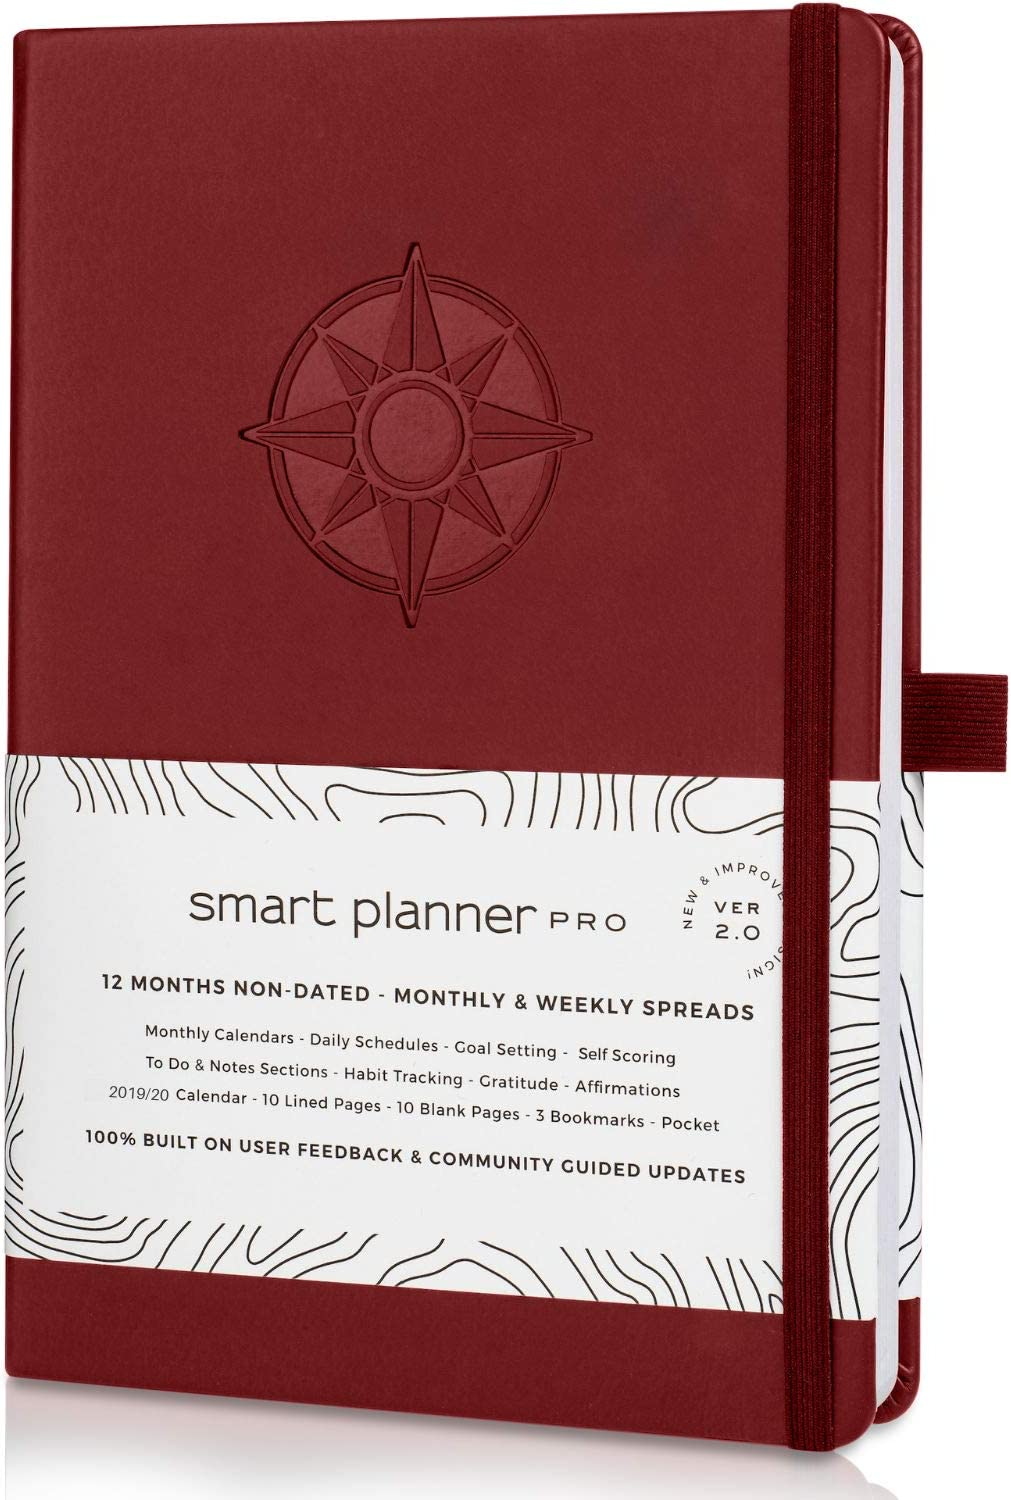 Planner 2020-2021 - Tested & Proven to Achieve Goals & Increase Productivity, Time Management & Happiness - Daily Weekly Monthly Planner with Gratitude Journal, Hardcover, Undated (Red)